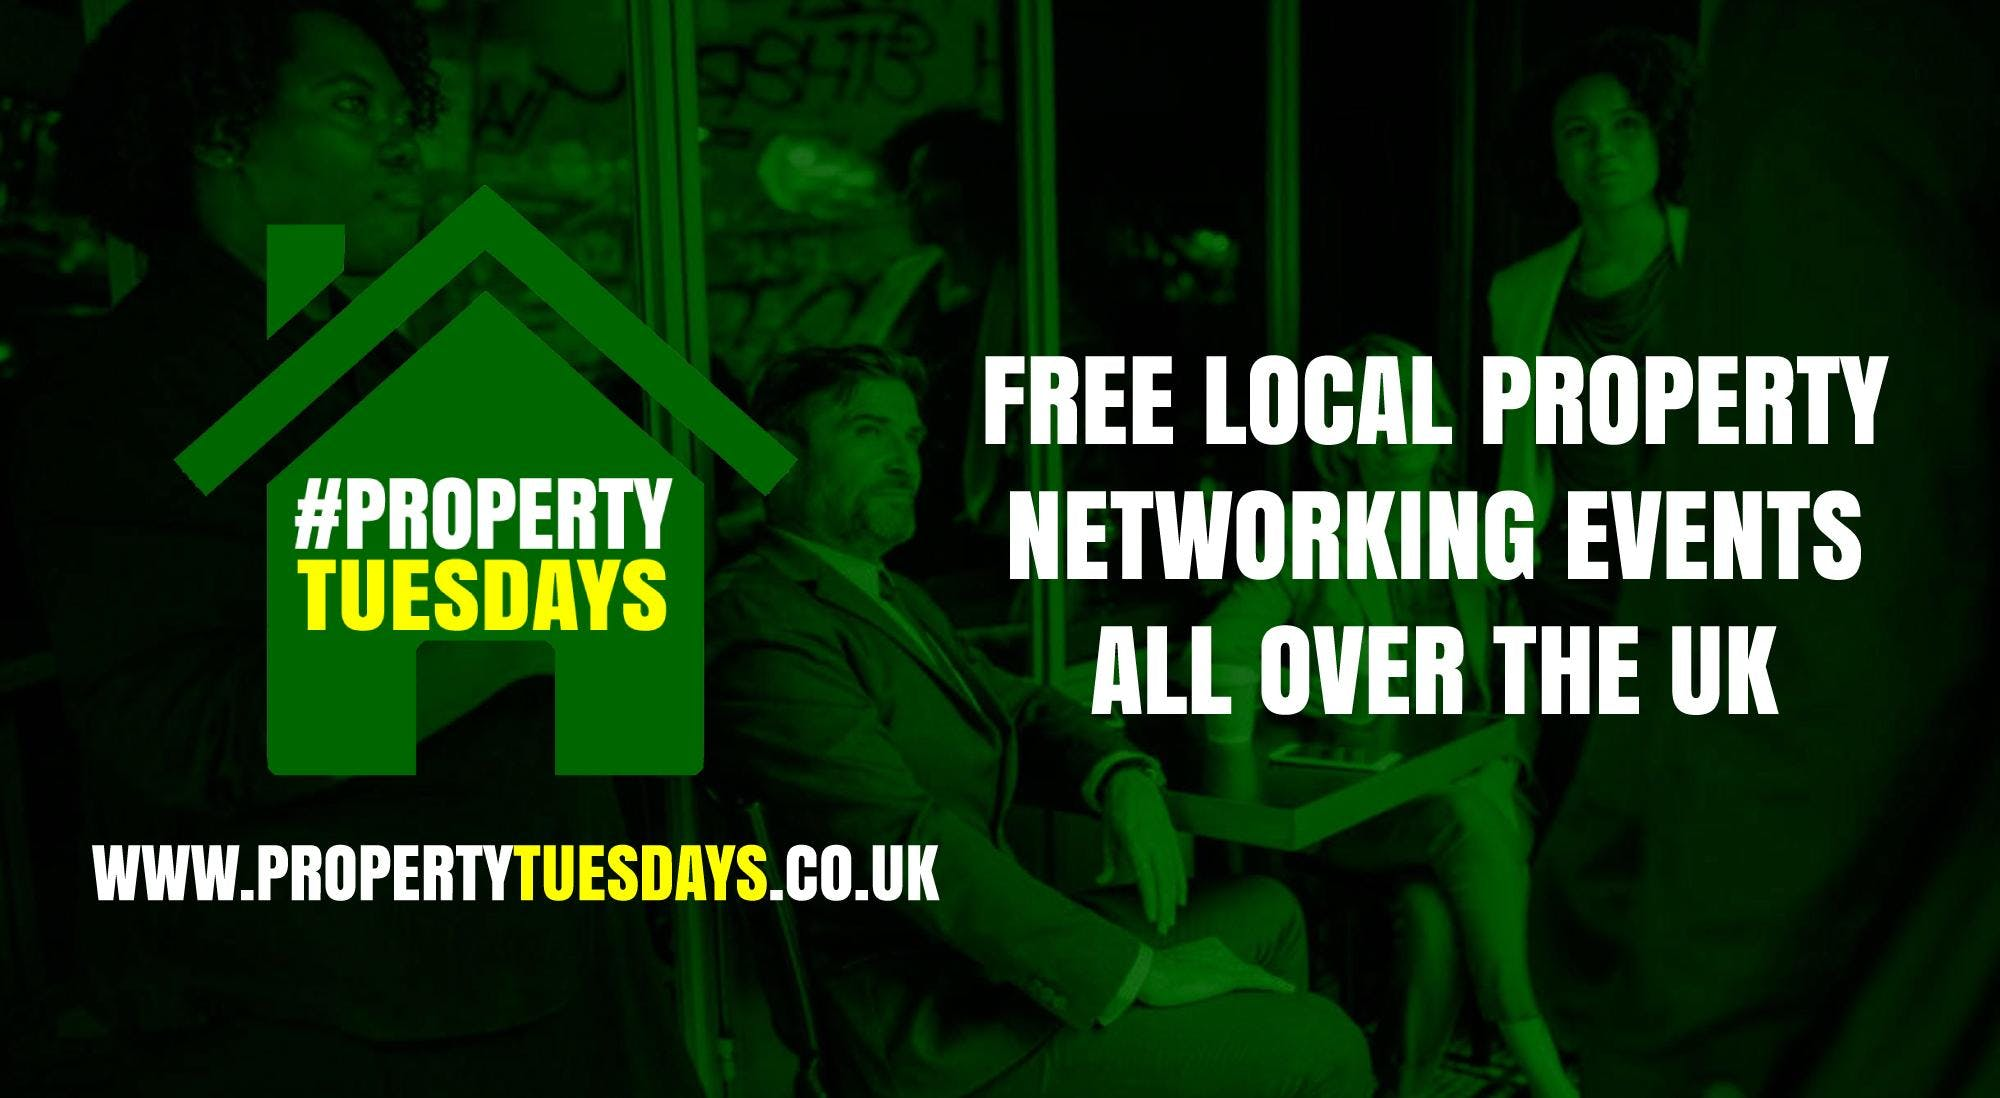 Property Tuesdays! Free property networking event in Bootle